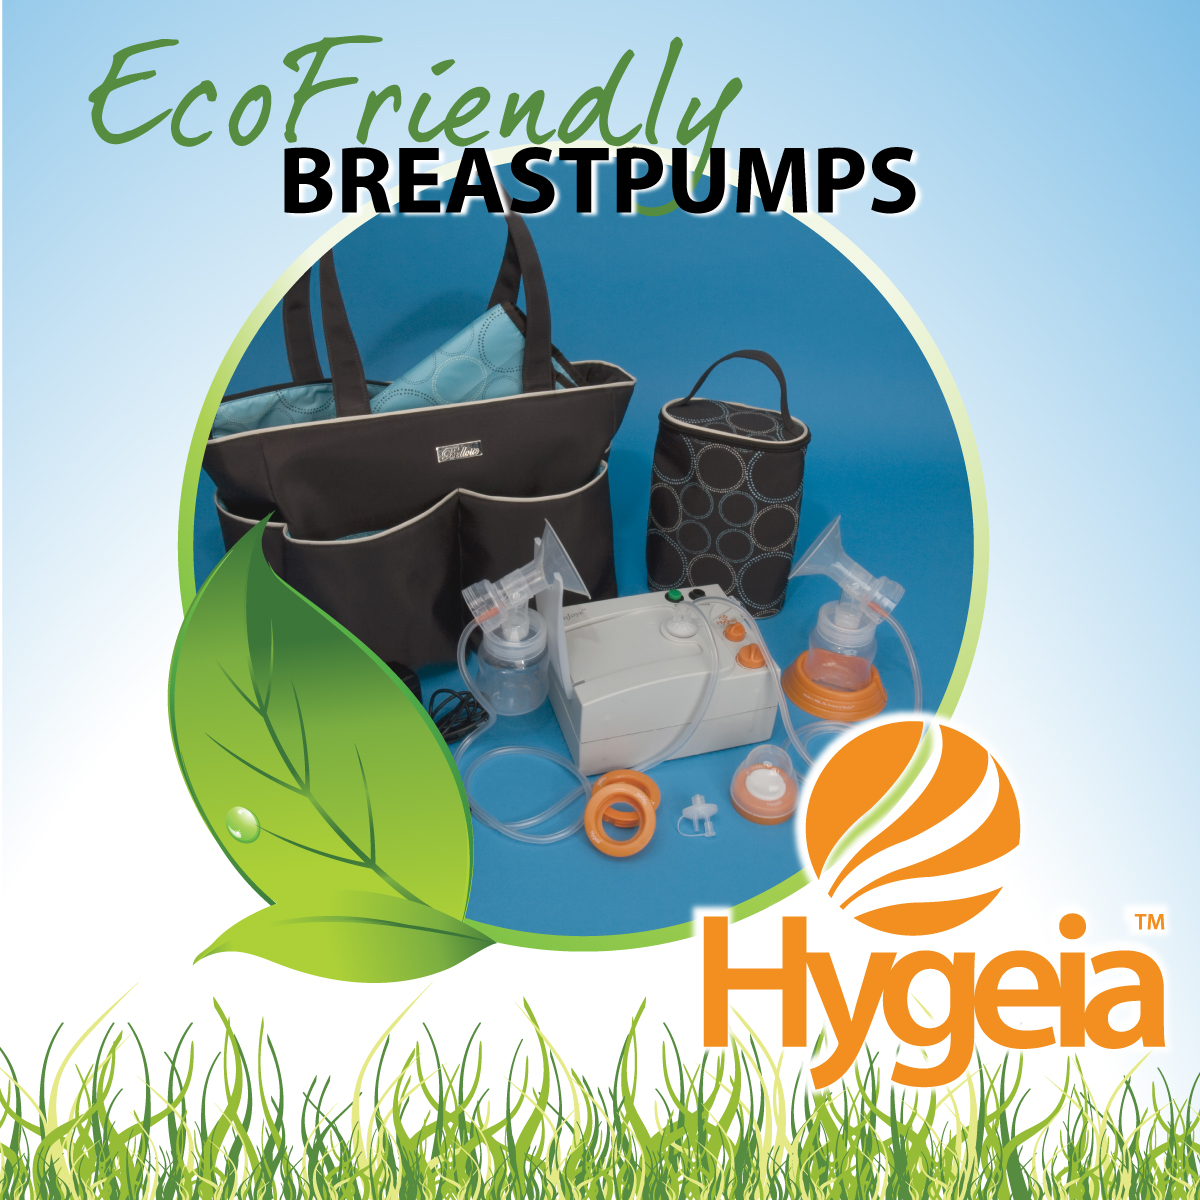 hygeia-eco-friendly-enjoye-logo.jpg